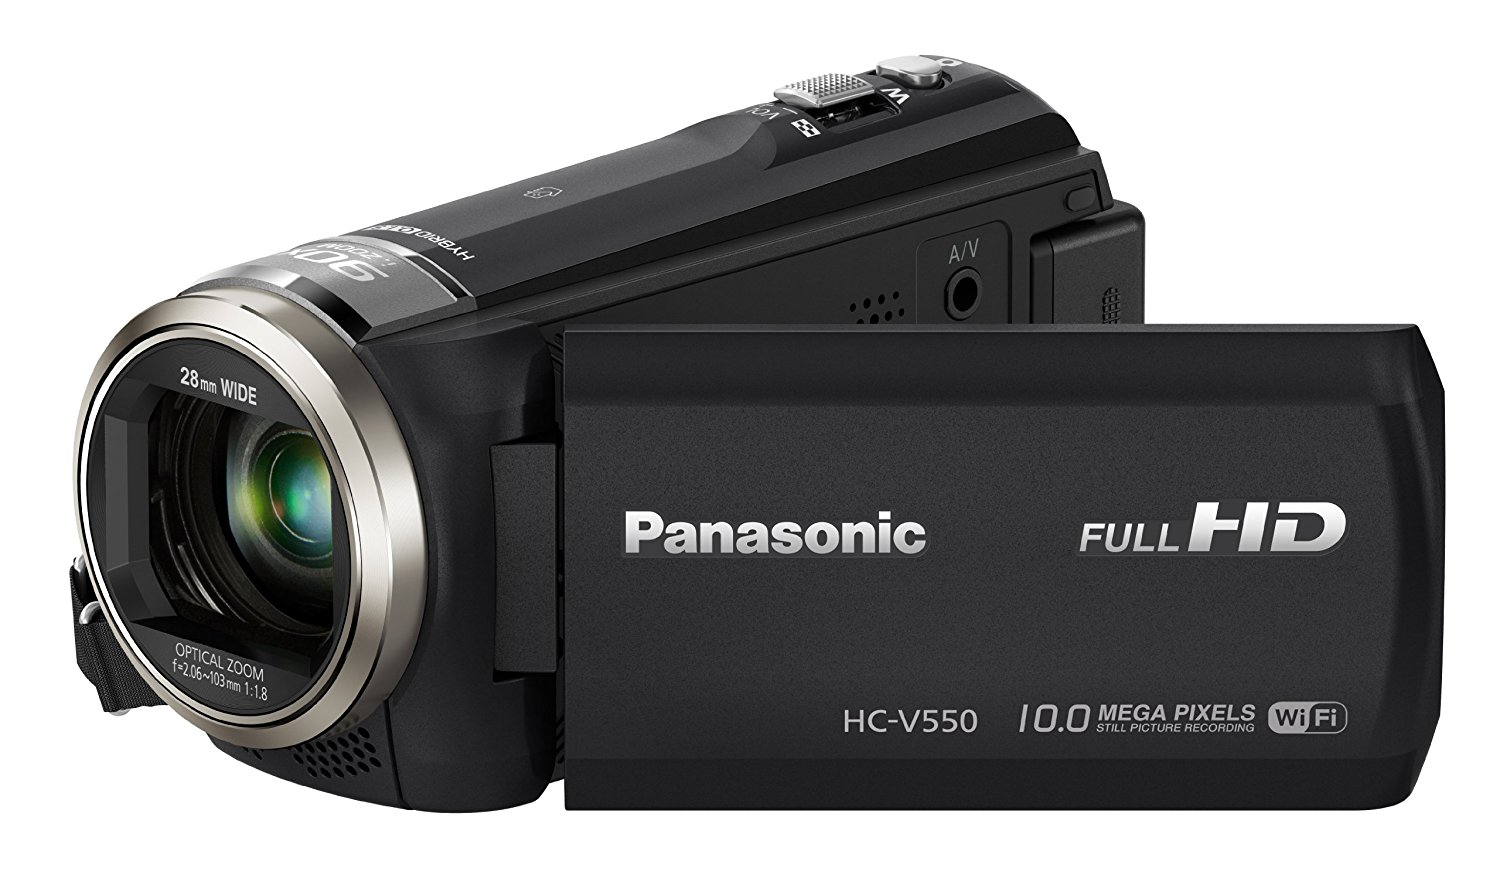 Panasonic HC-V550CTEBK Full HD Camcorder - Black (10MP, 90x Intelligent Zoom, Wi-Fi, NFC) 3.0 inch LCD (New for 2014)